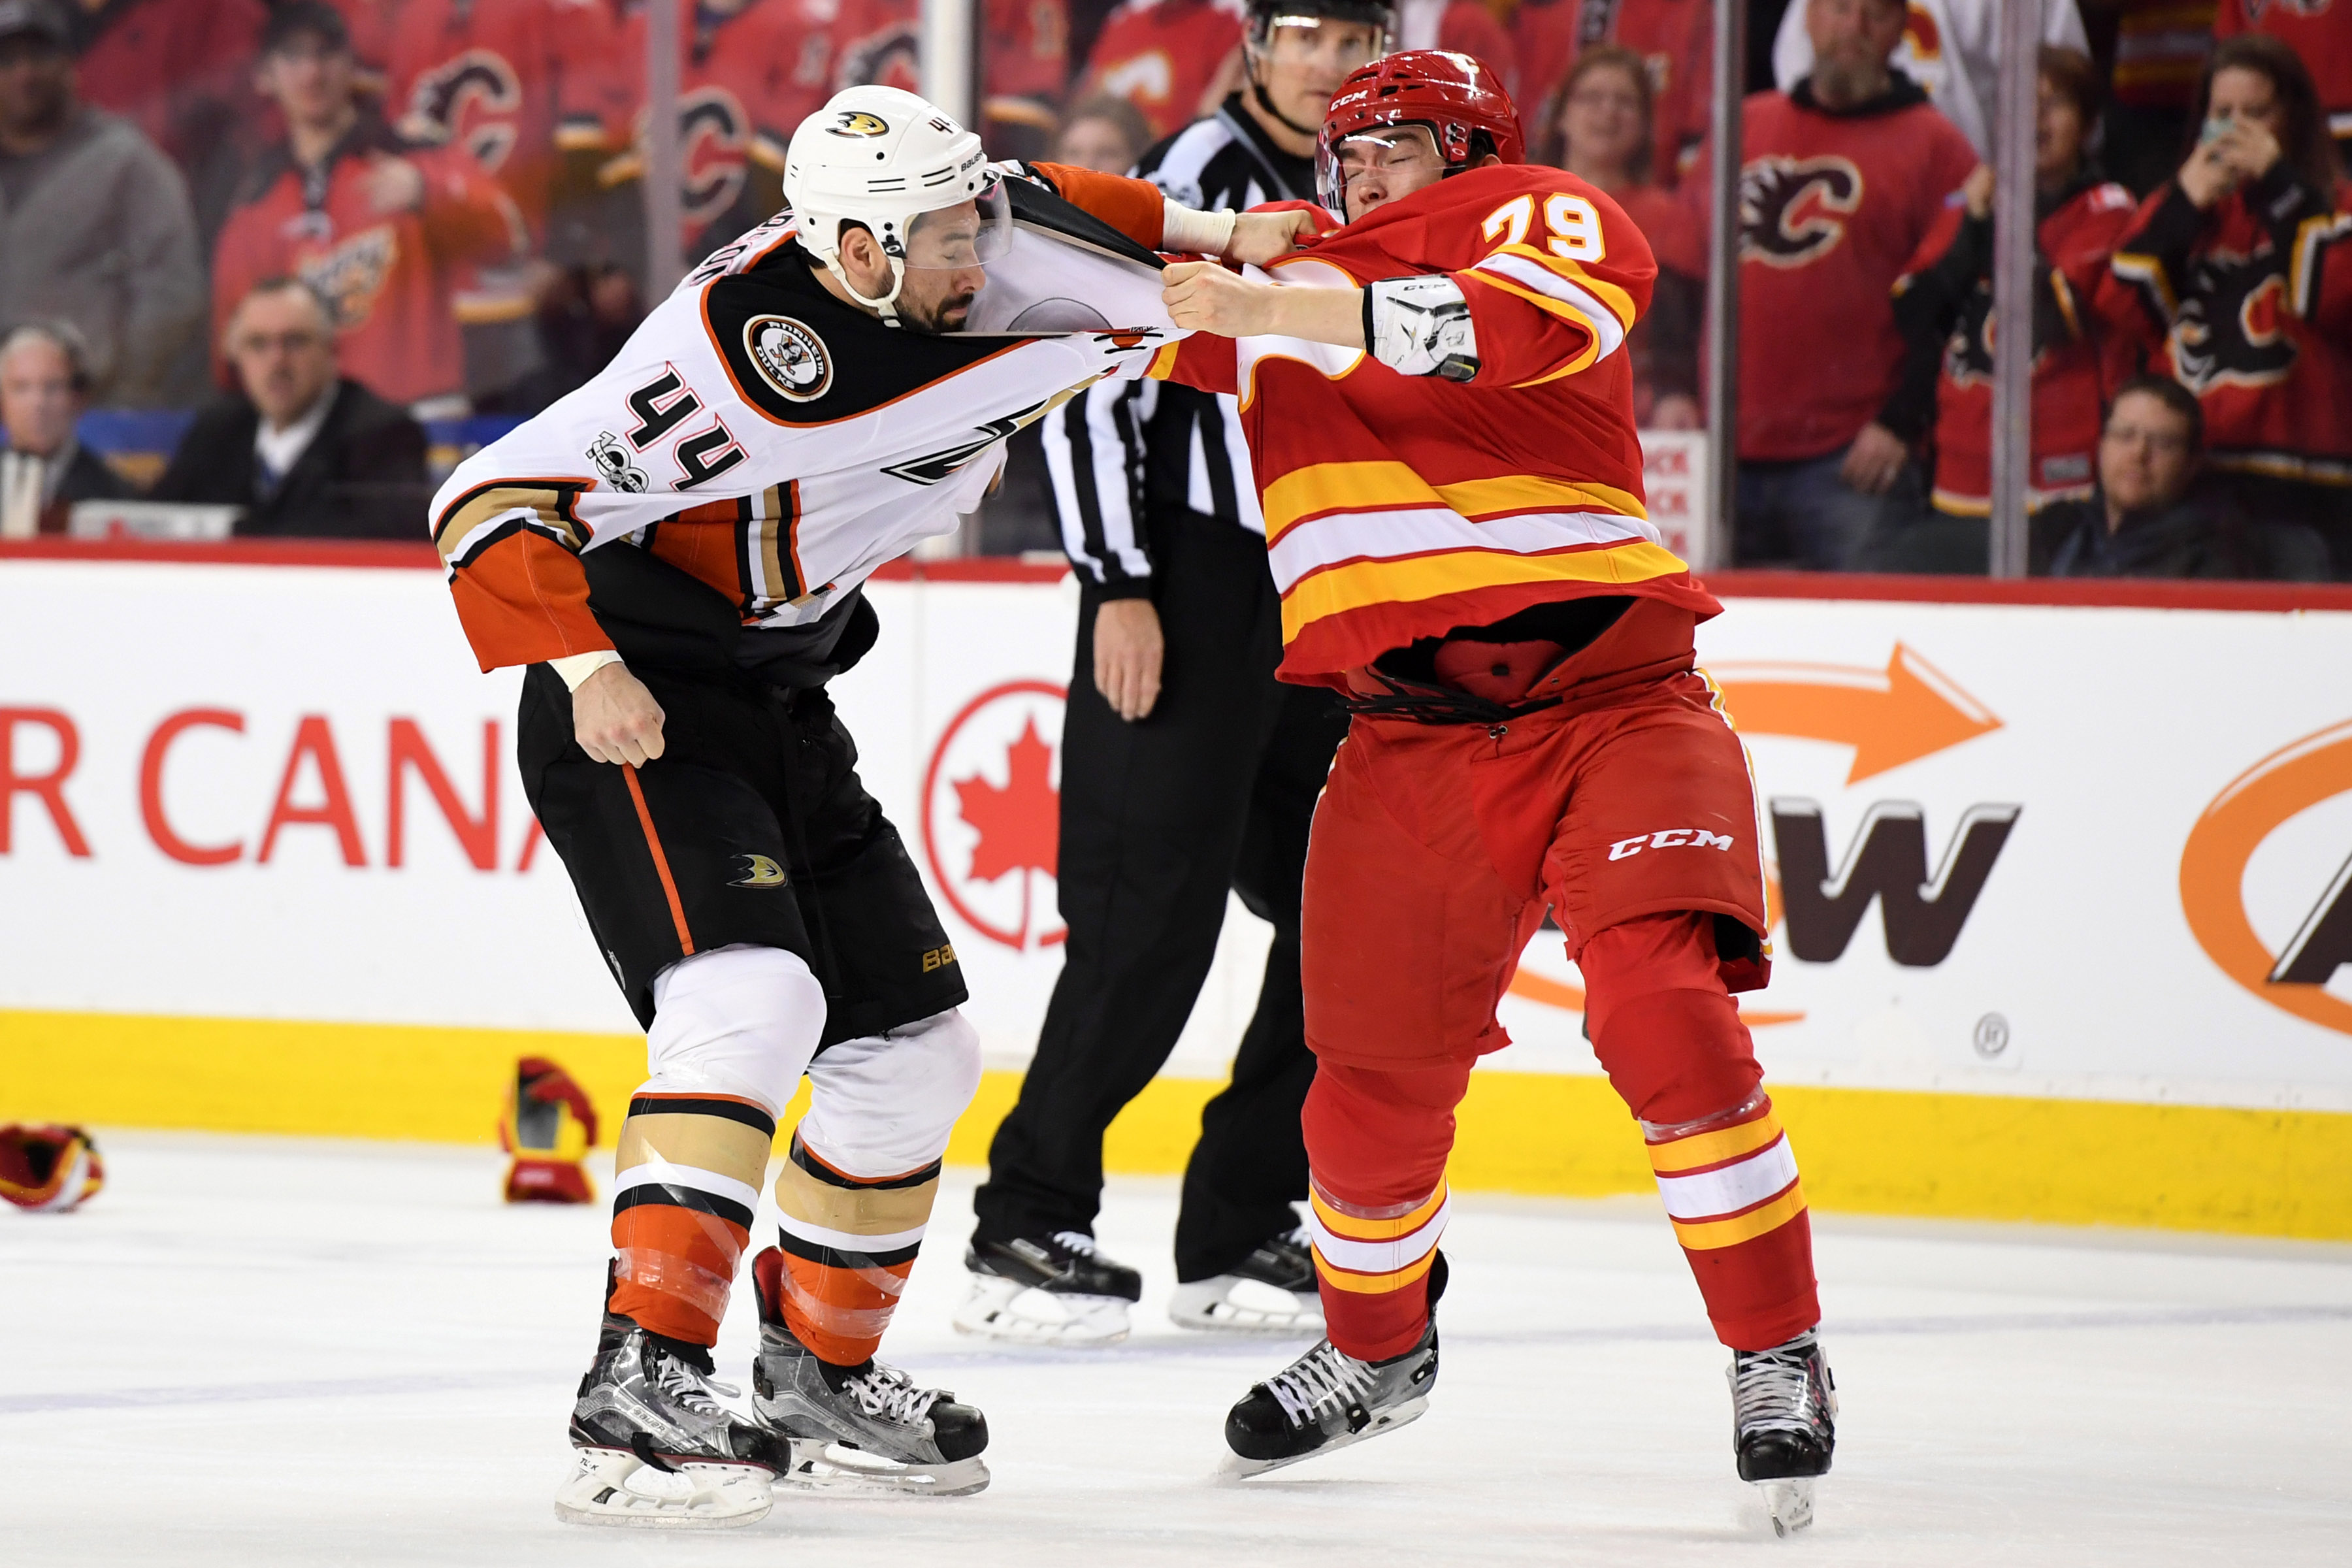 9988841-nhl-anaheim-ducks-at-calgary-flames